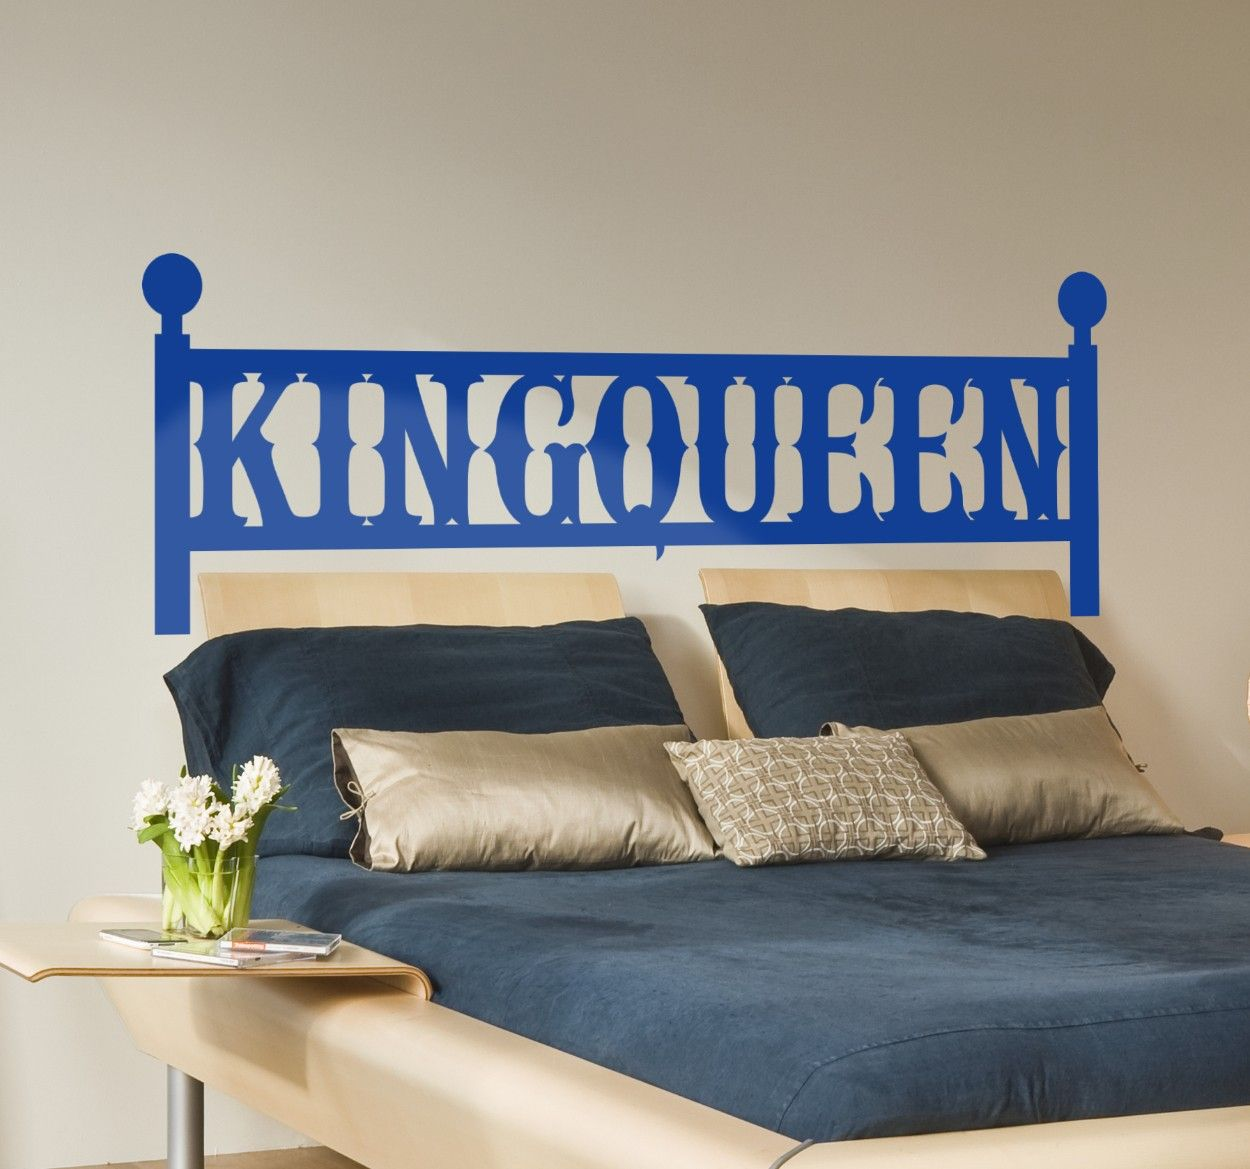 living together with your hubby decorate your room in a creative and romantic way - Kopfteil Plant Knig